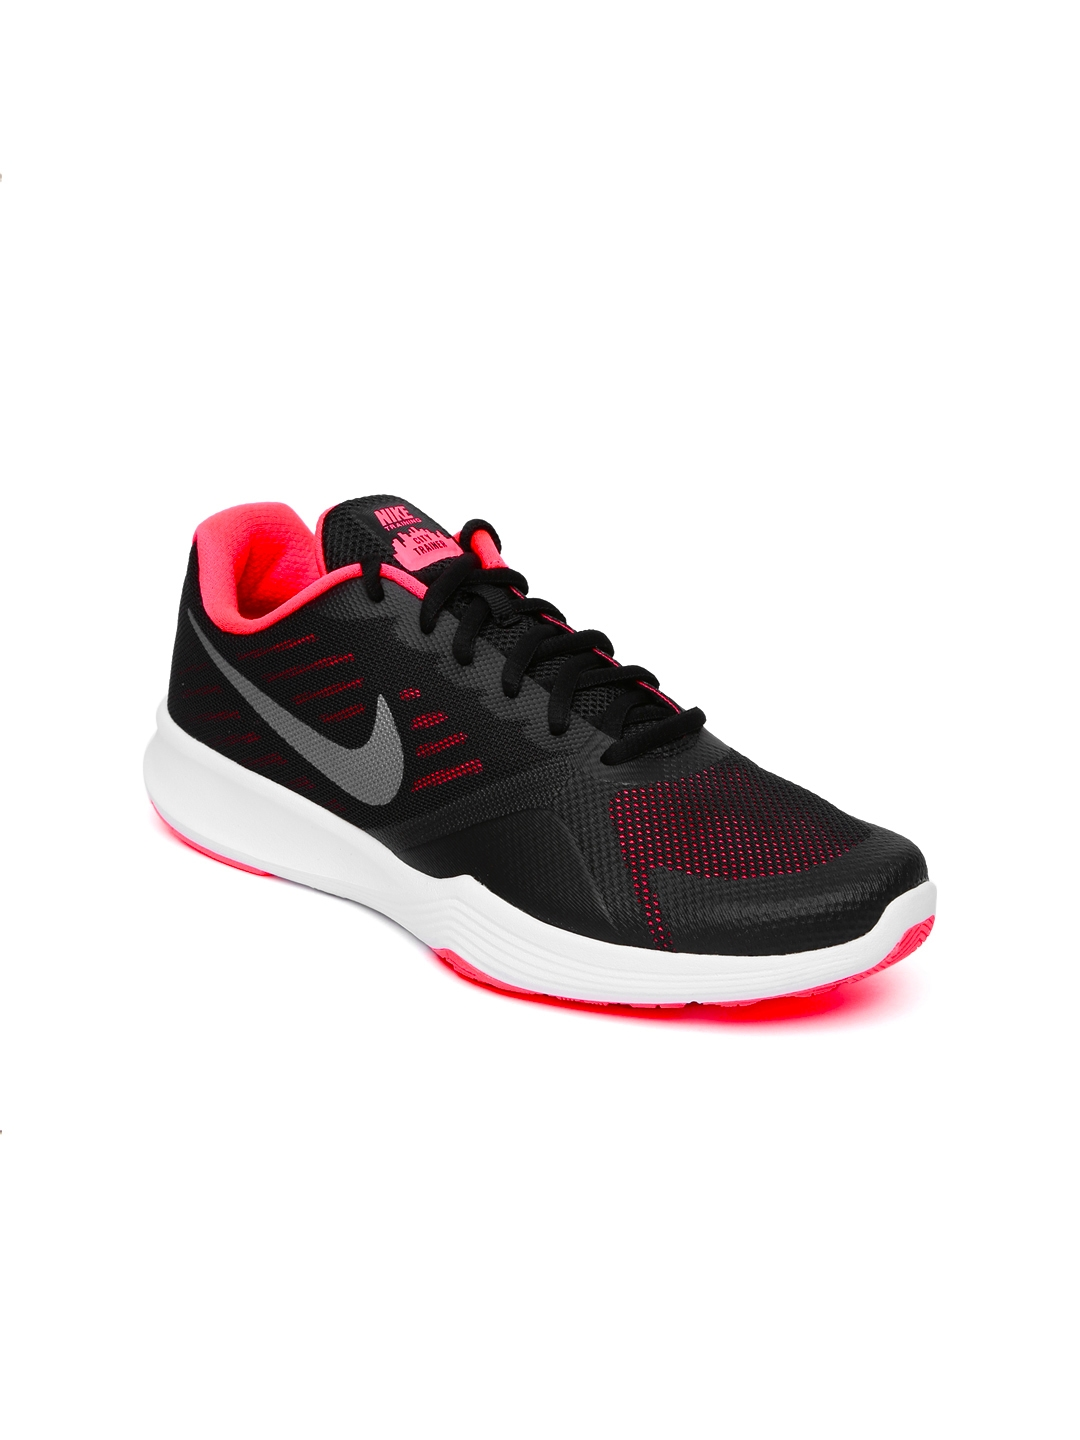 16ef9551d Buy Nike Women Black City Trainer Training Shoes - Sports Shoes for ...